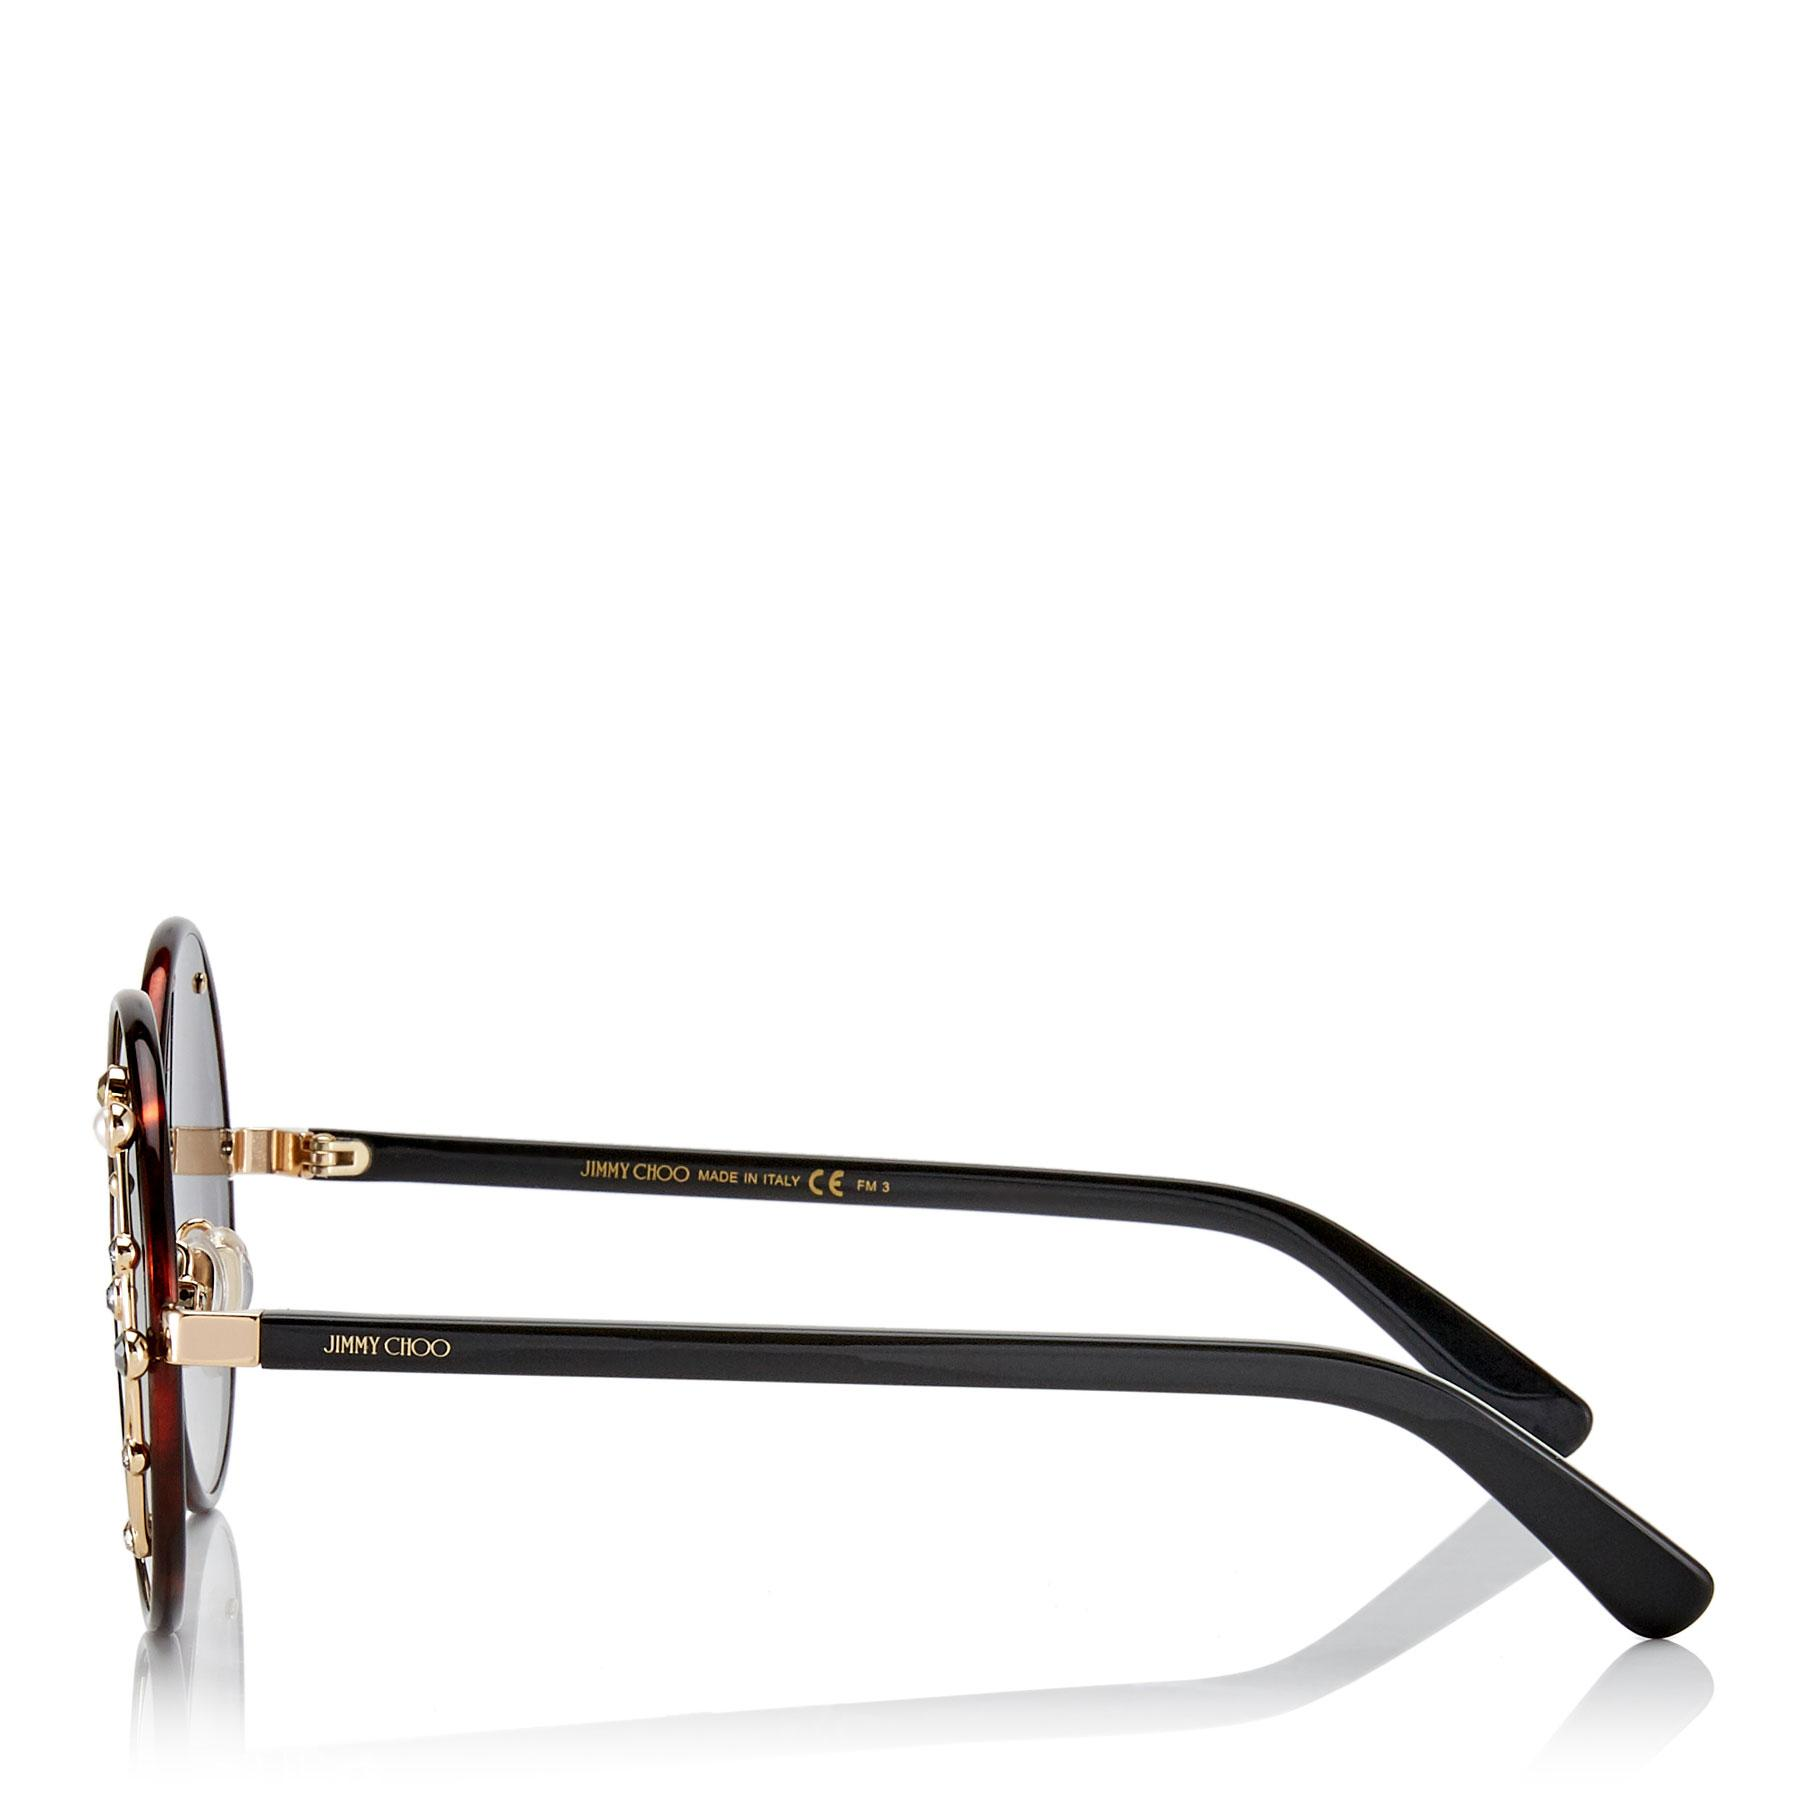 86bd8c03d5c Jimmy Choo - Multicolor Gema Dark Havana Round Shaped Metal Sunglasses With  Swarovski Crystals And Pearls. View fullscreen